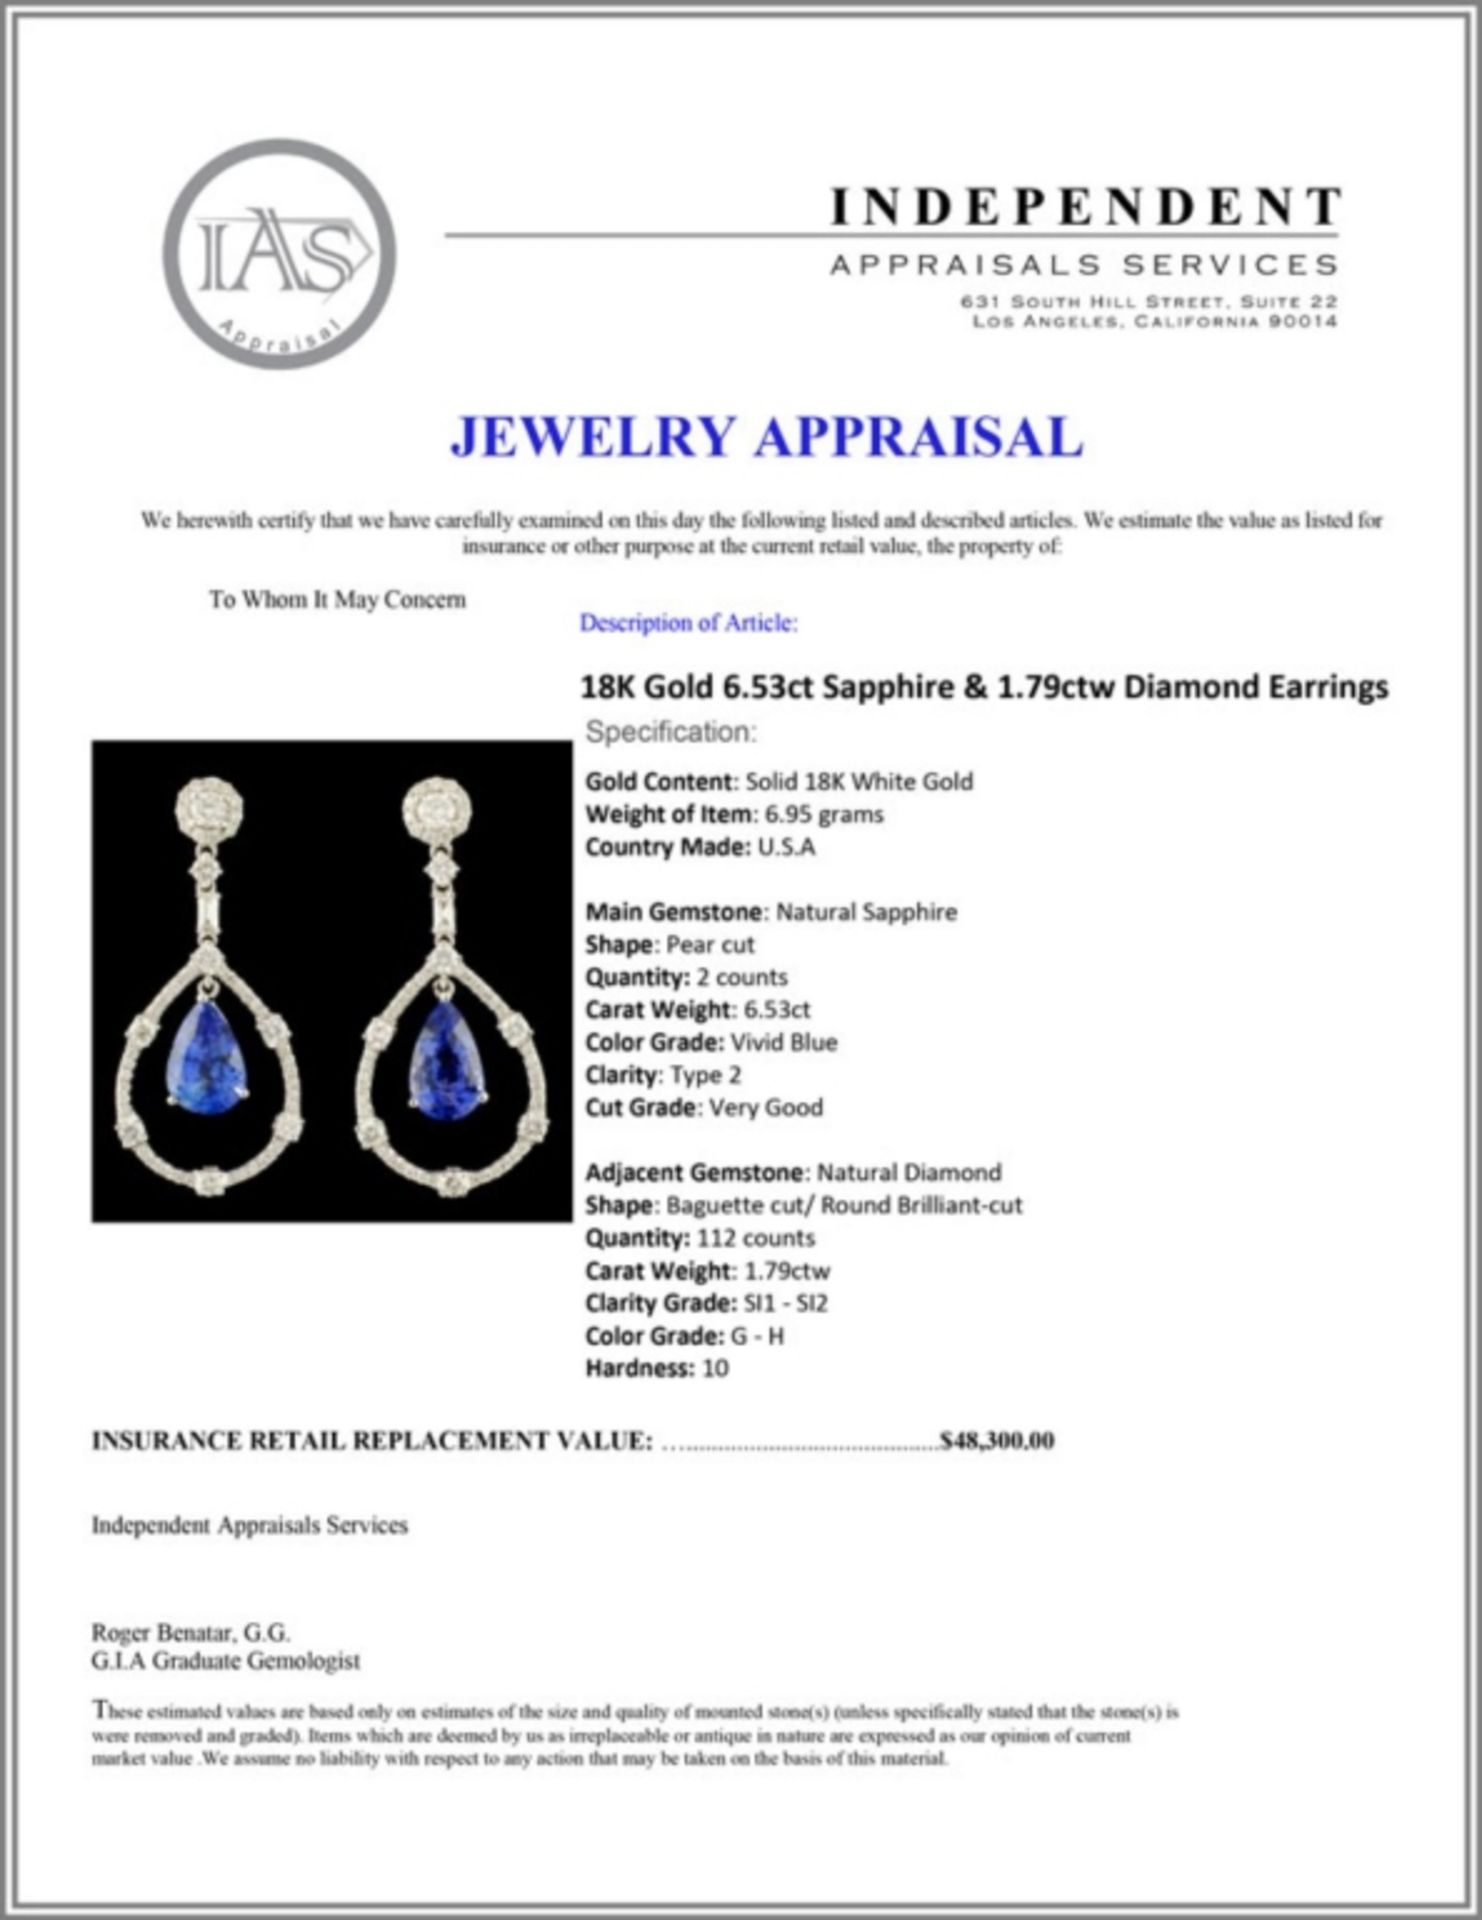 18K Gold 6.53ct Sapphire & 1.79ctw Diamond Earring - Image 3 of 3